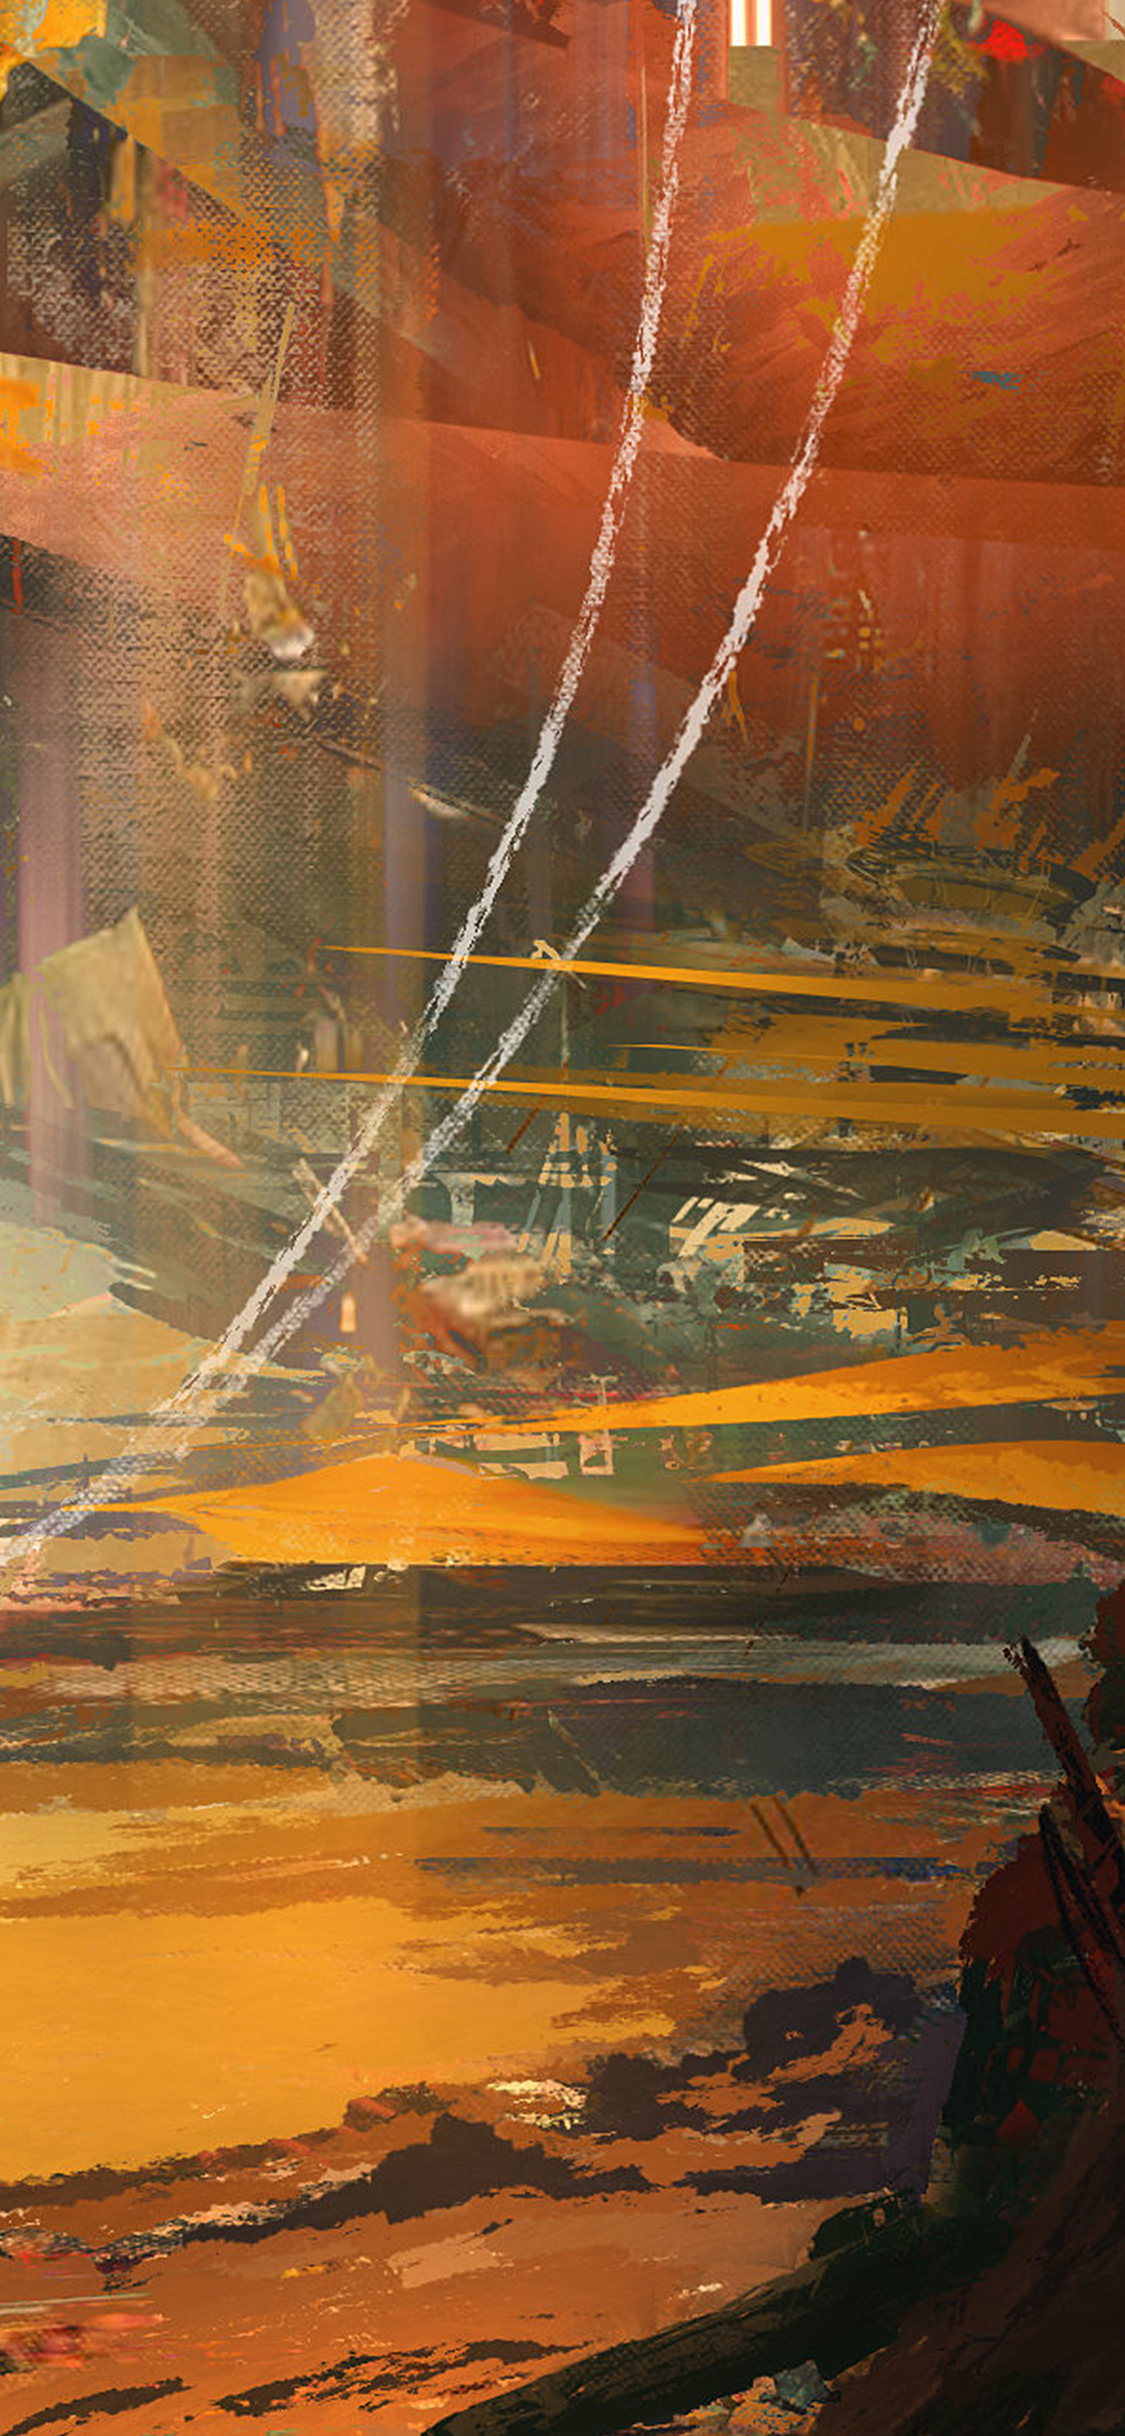 Papers Co Iphone Wallpaper Aw54 Wadim Kashin Paint Abstract Red Illustration Art